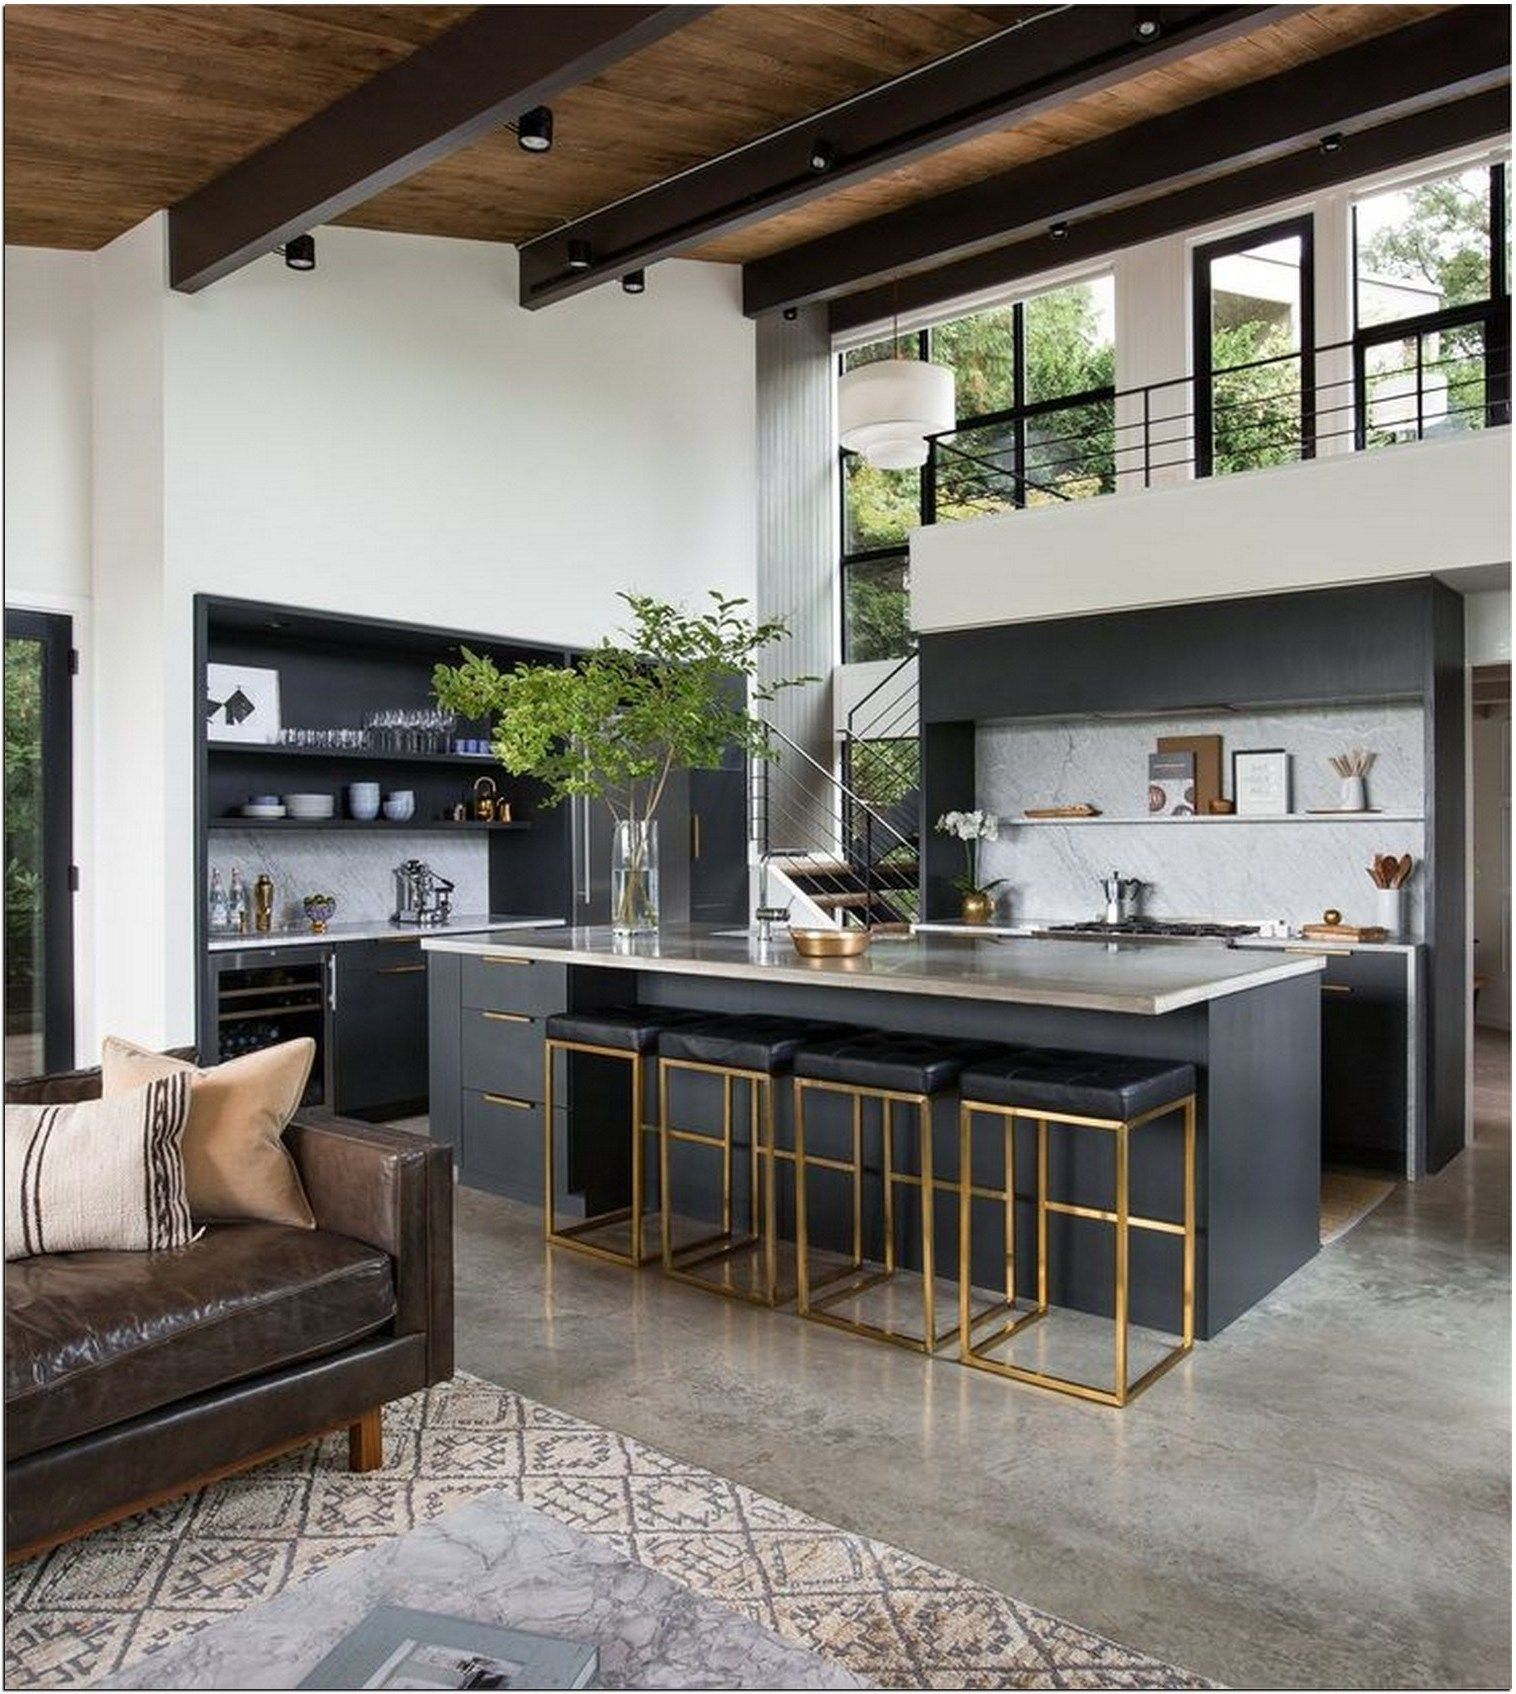 23+ Best Most Beautiful Kitchens You Have Ever Seen in